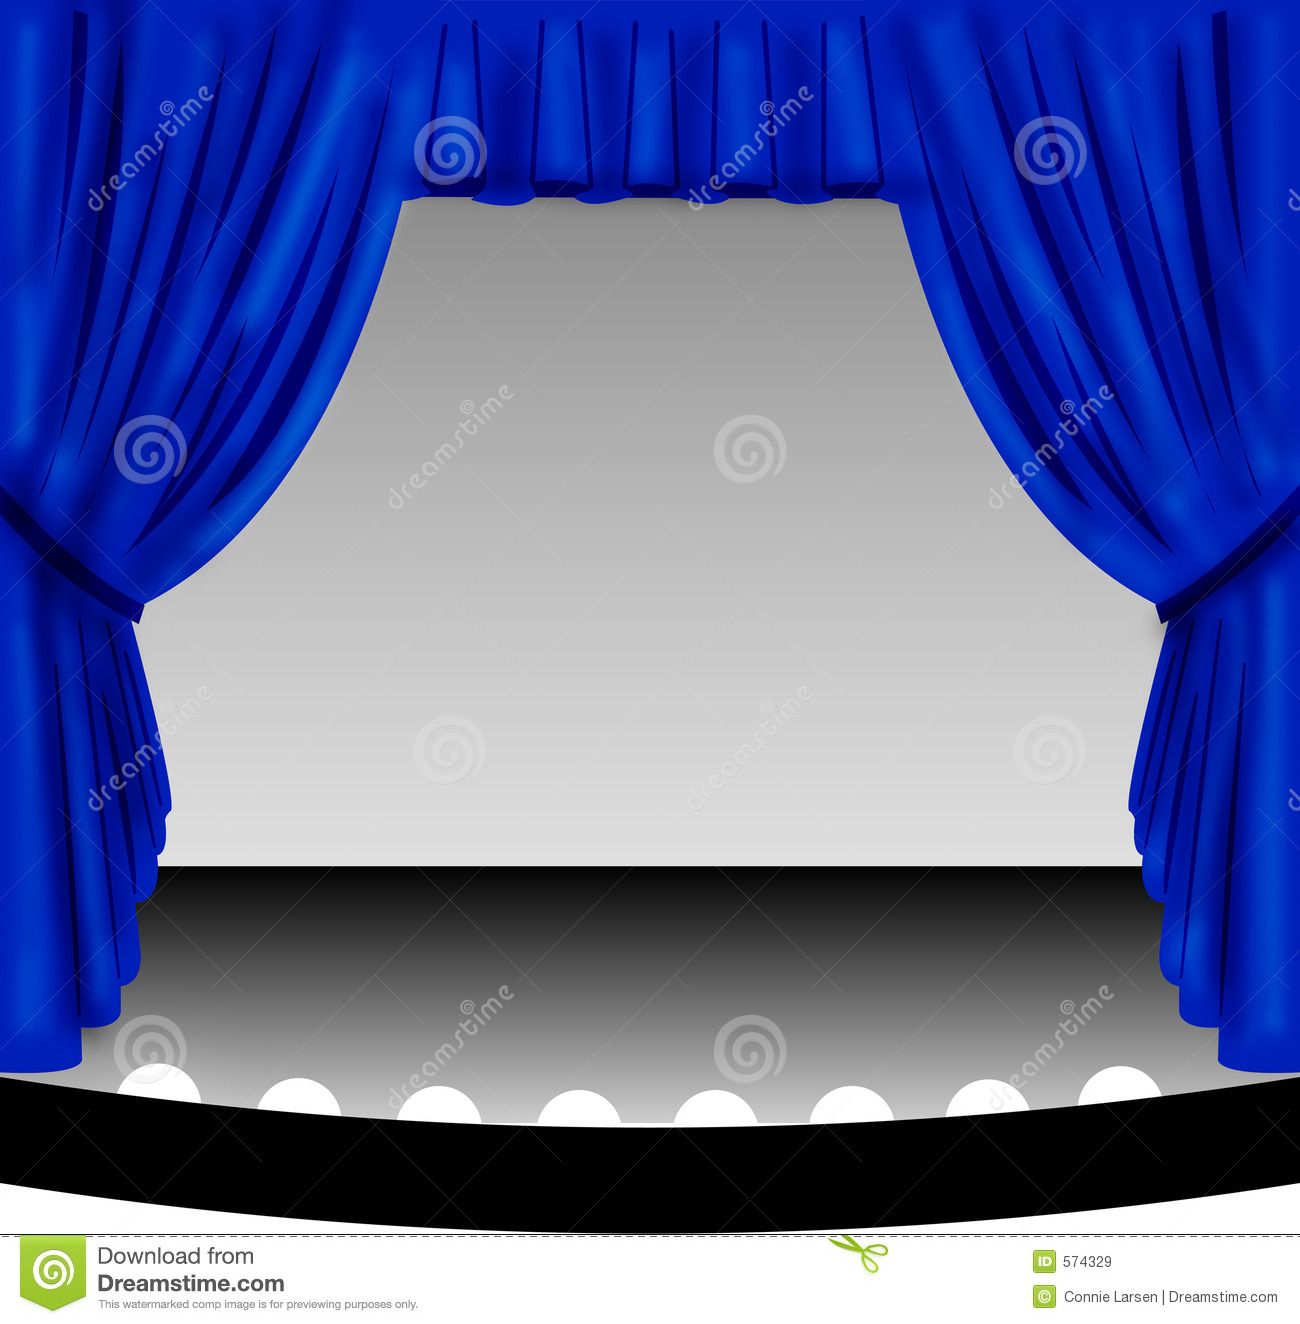 Stage stock illustration of. Curtain clipart blue curtain banner royalty free download